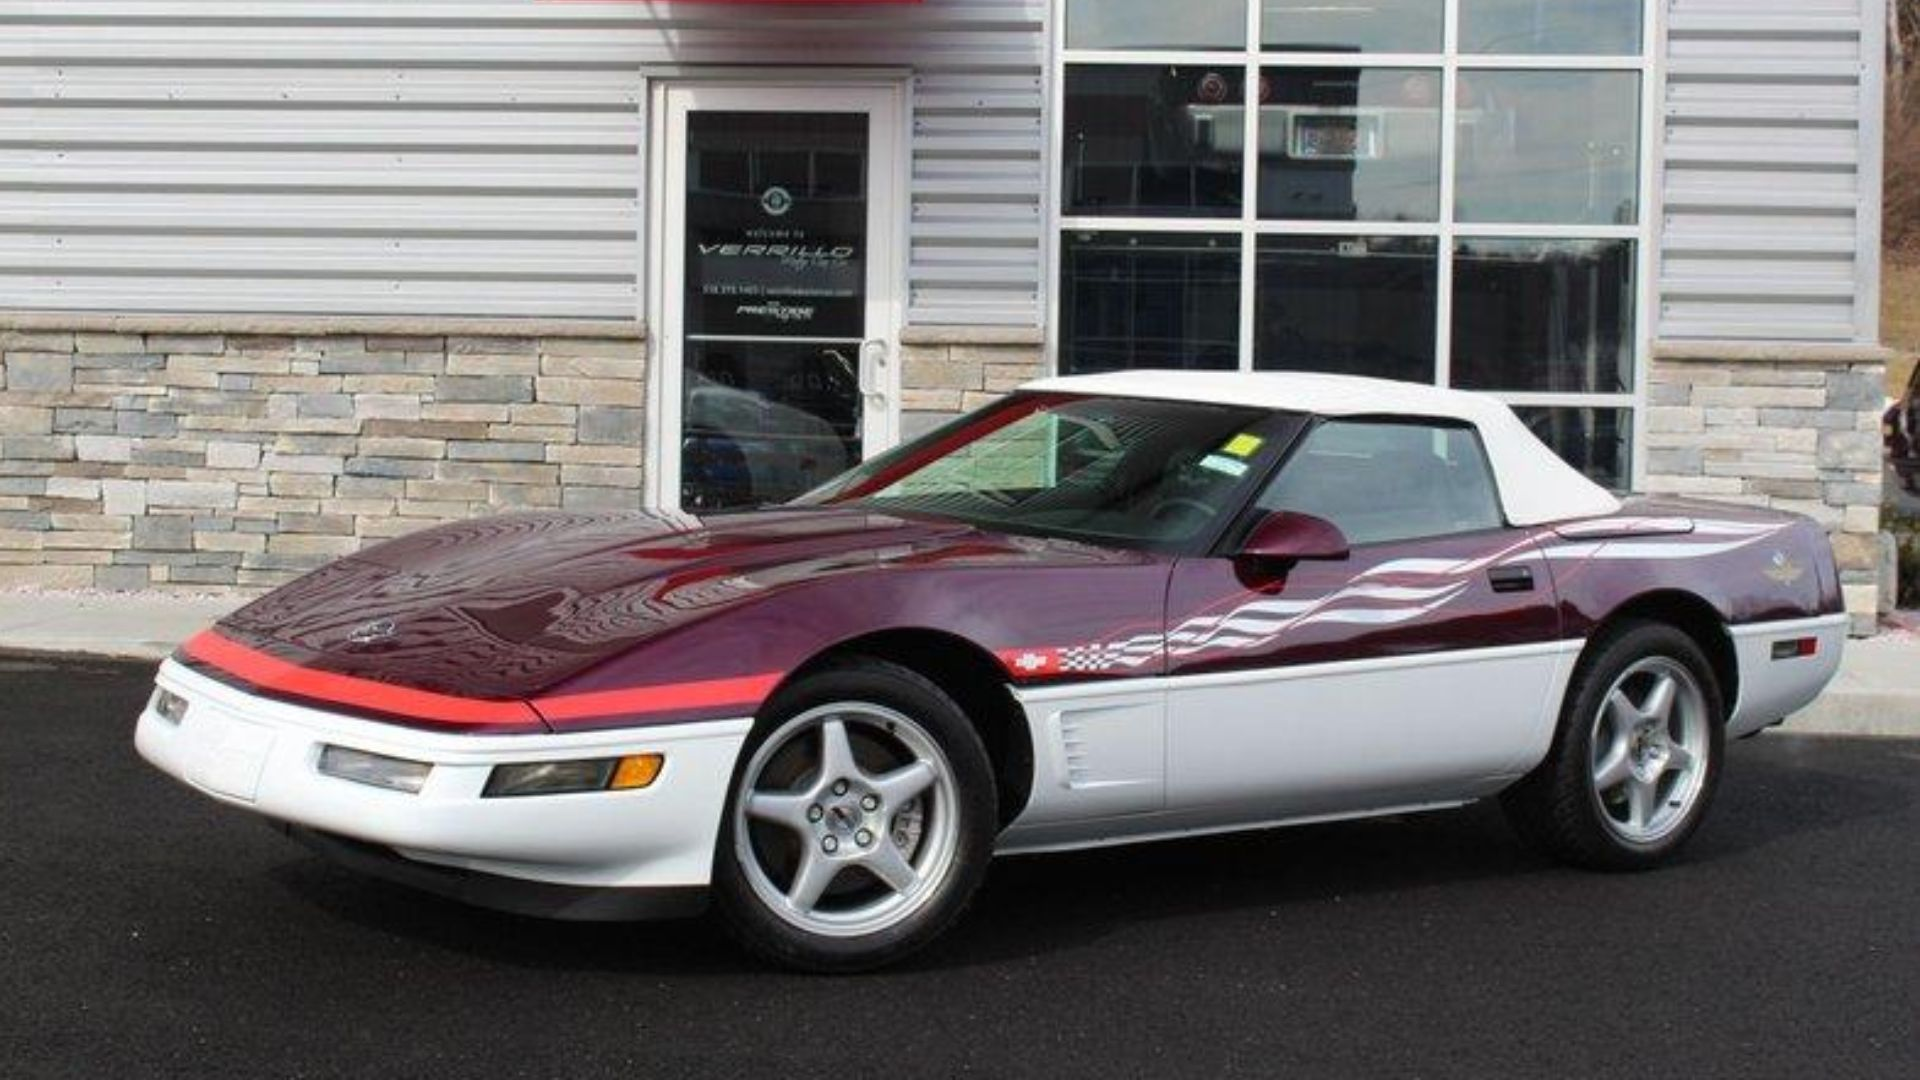 Drive Away In This 1995 Chevy Corvette Indianapolis 500 Pace Car